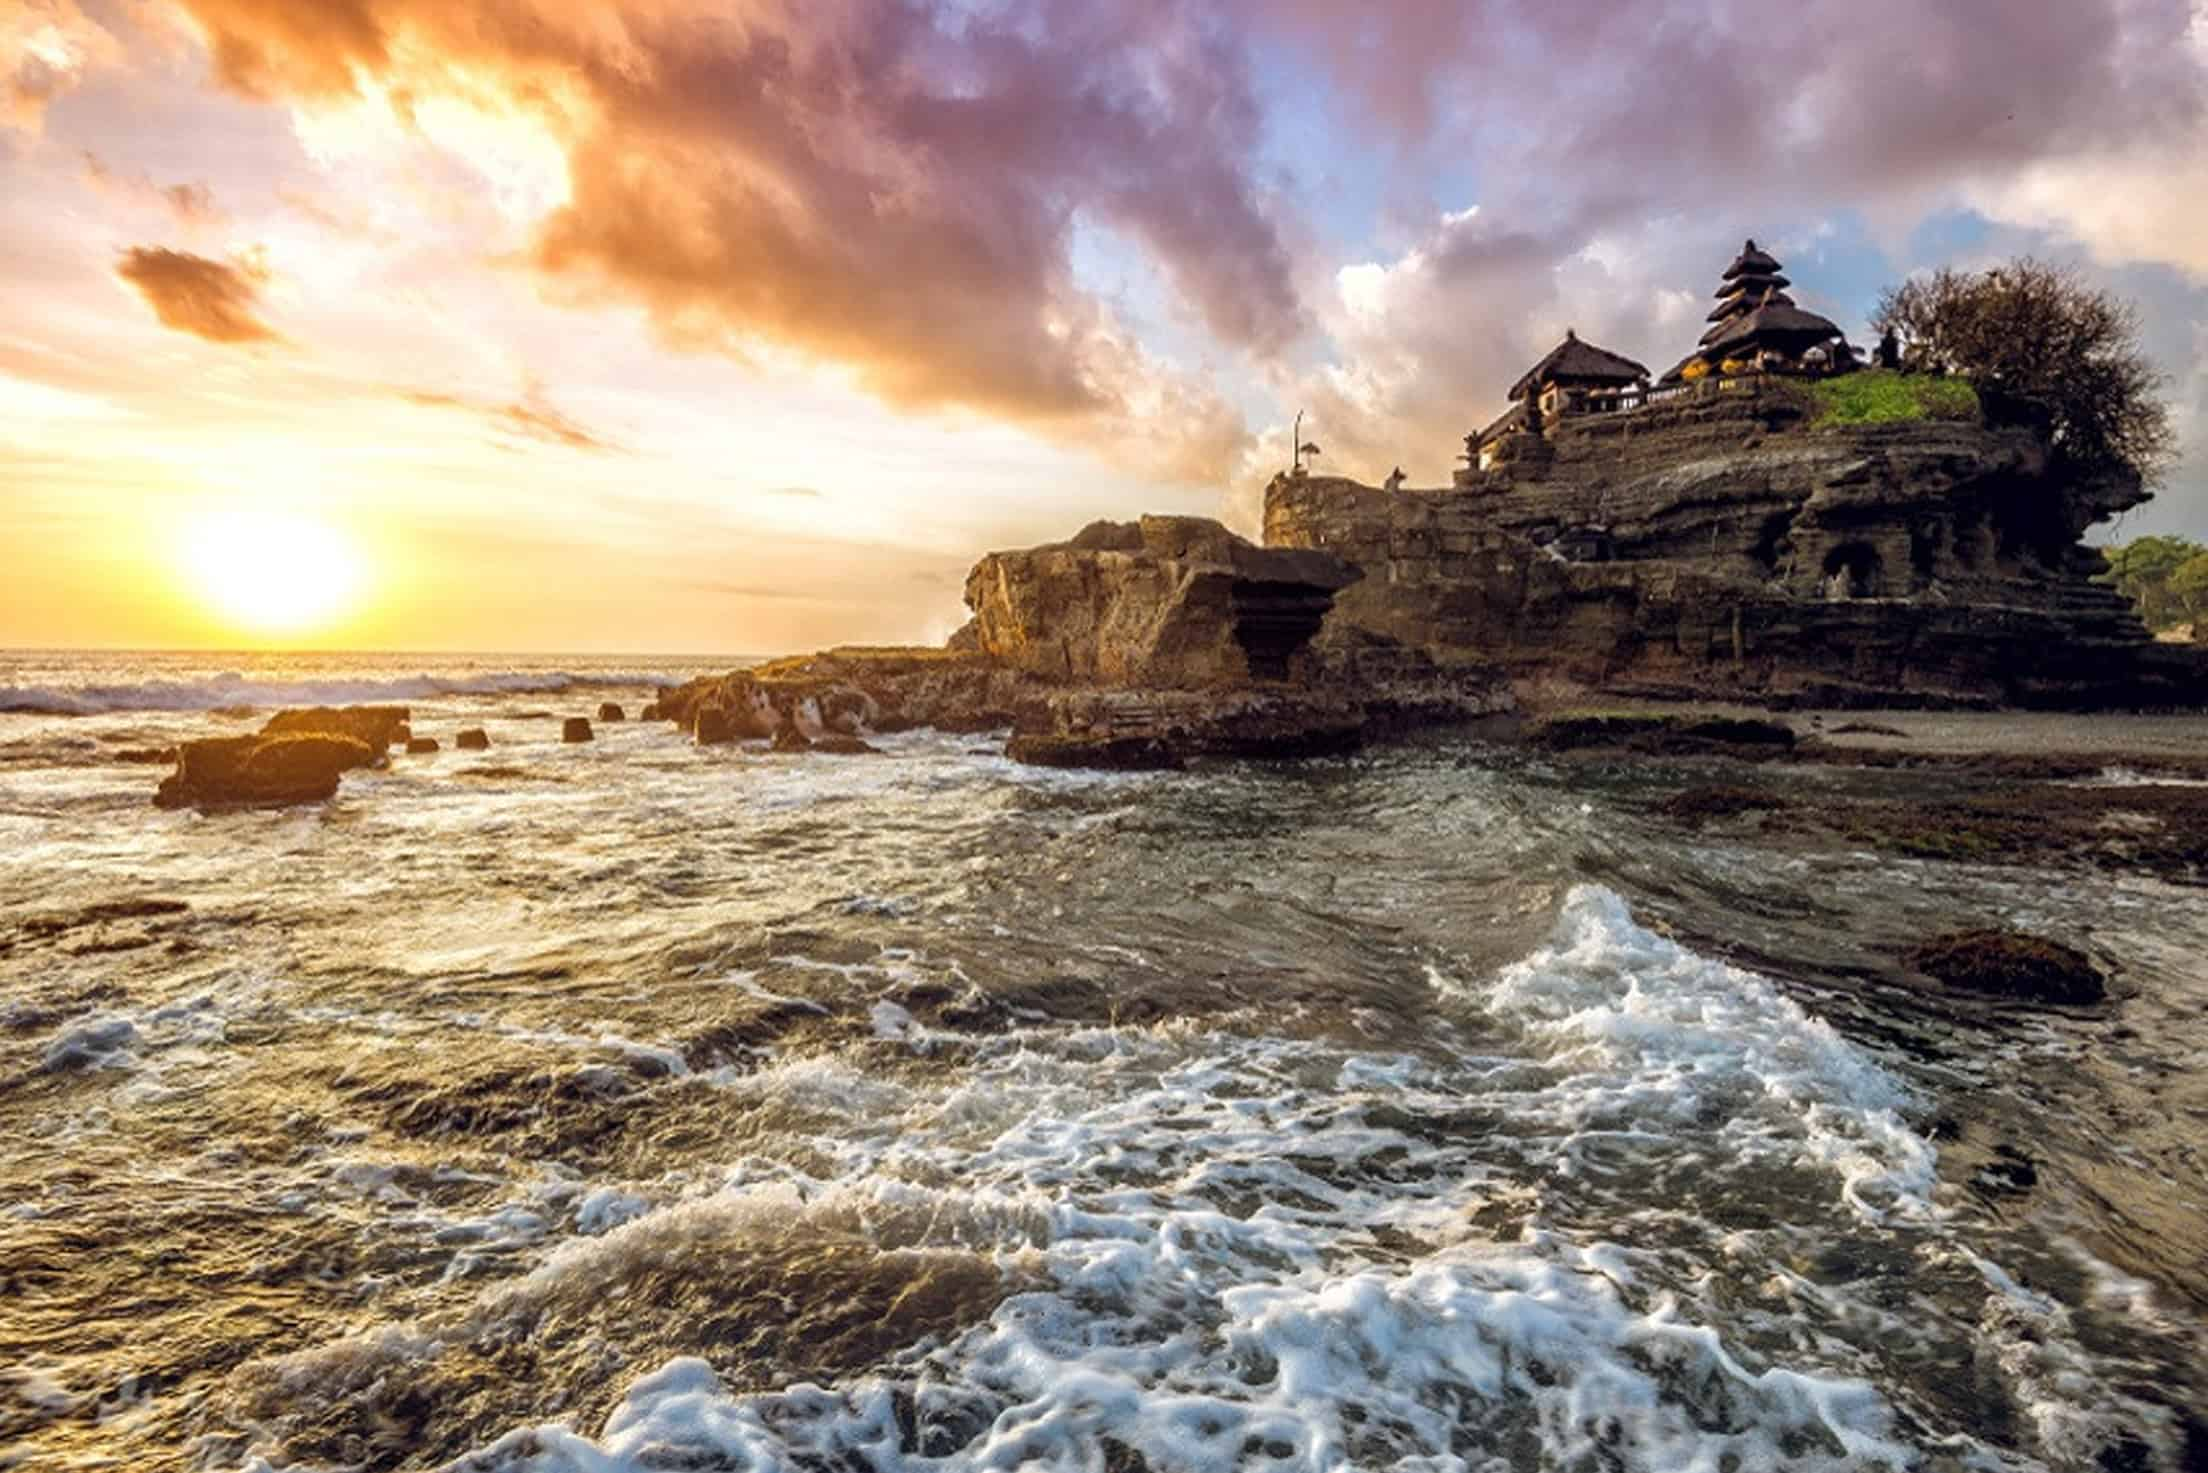 BALI IS WORLD'S MOST INSTAGRAMMED ISLAND